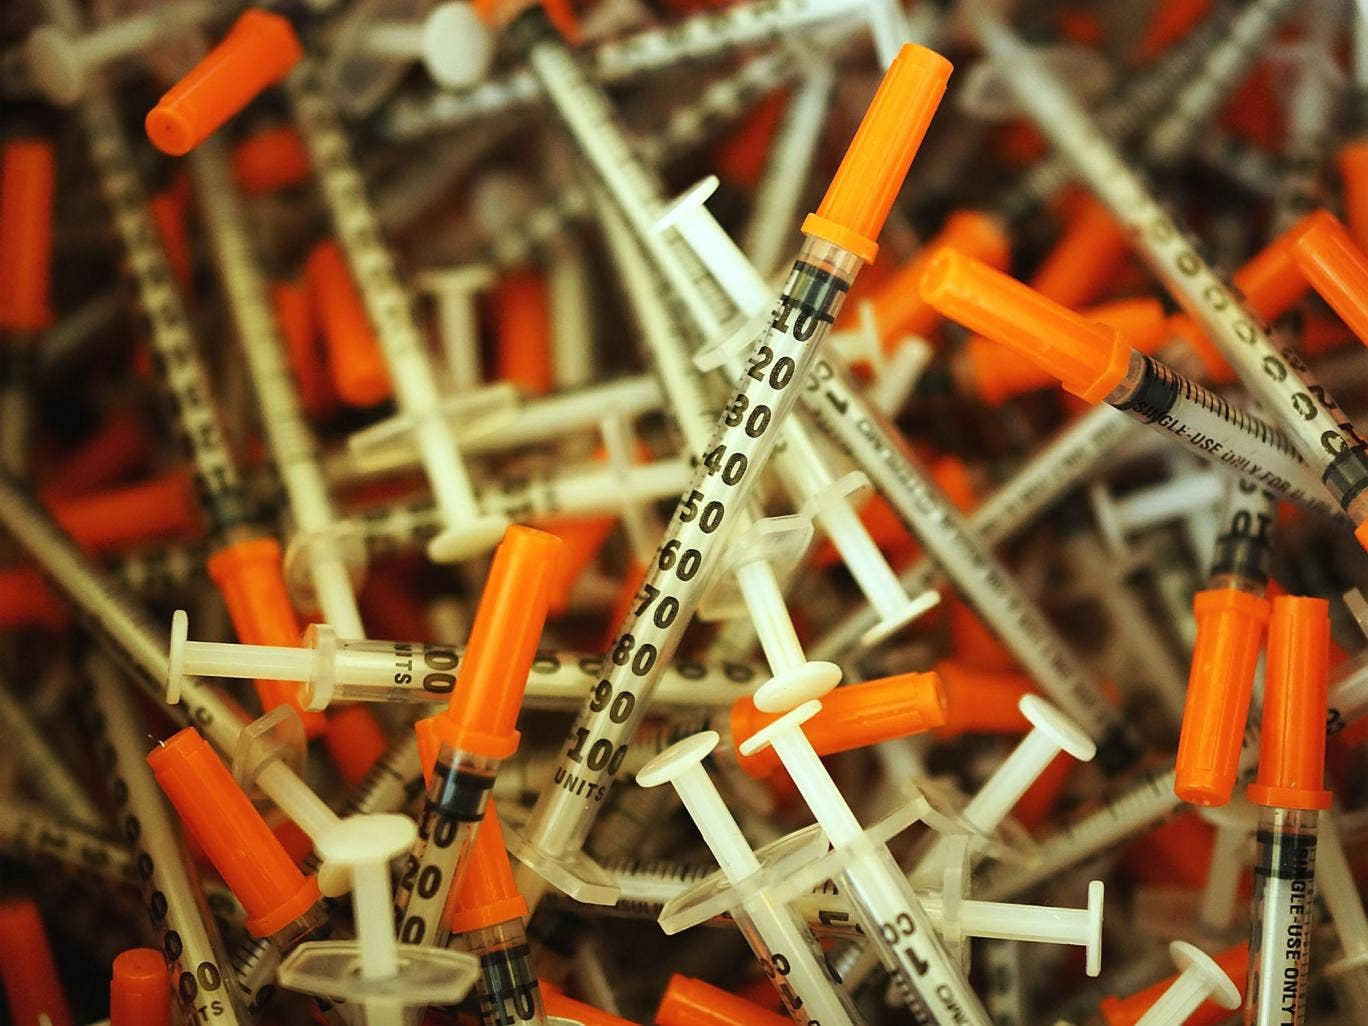 Discarded syringes at a needle exchange clinic